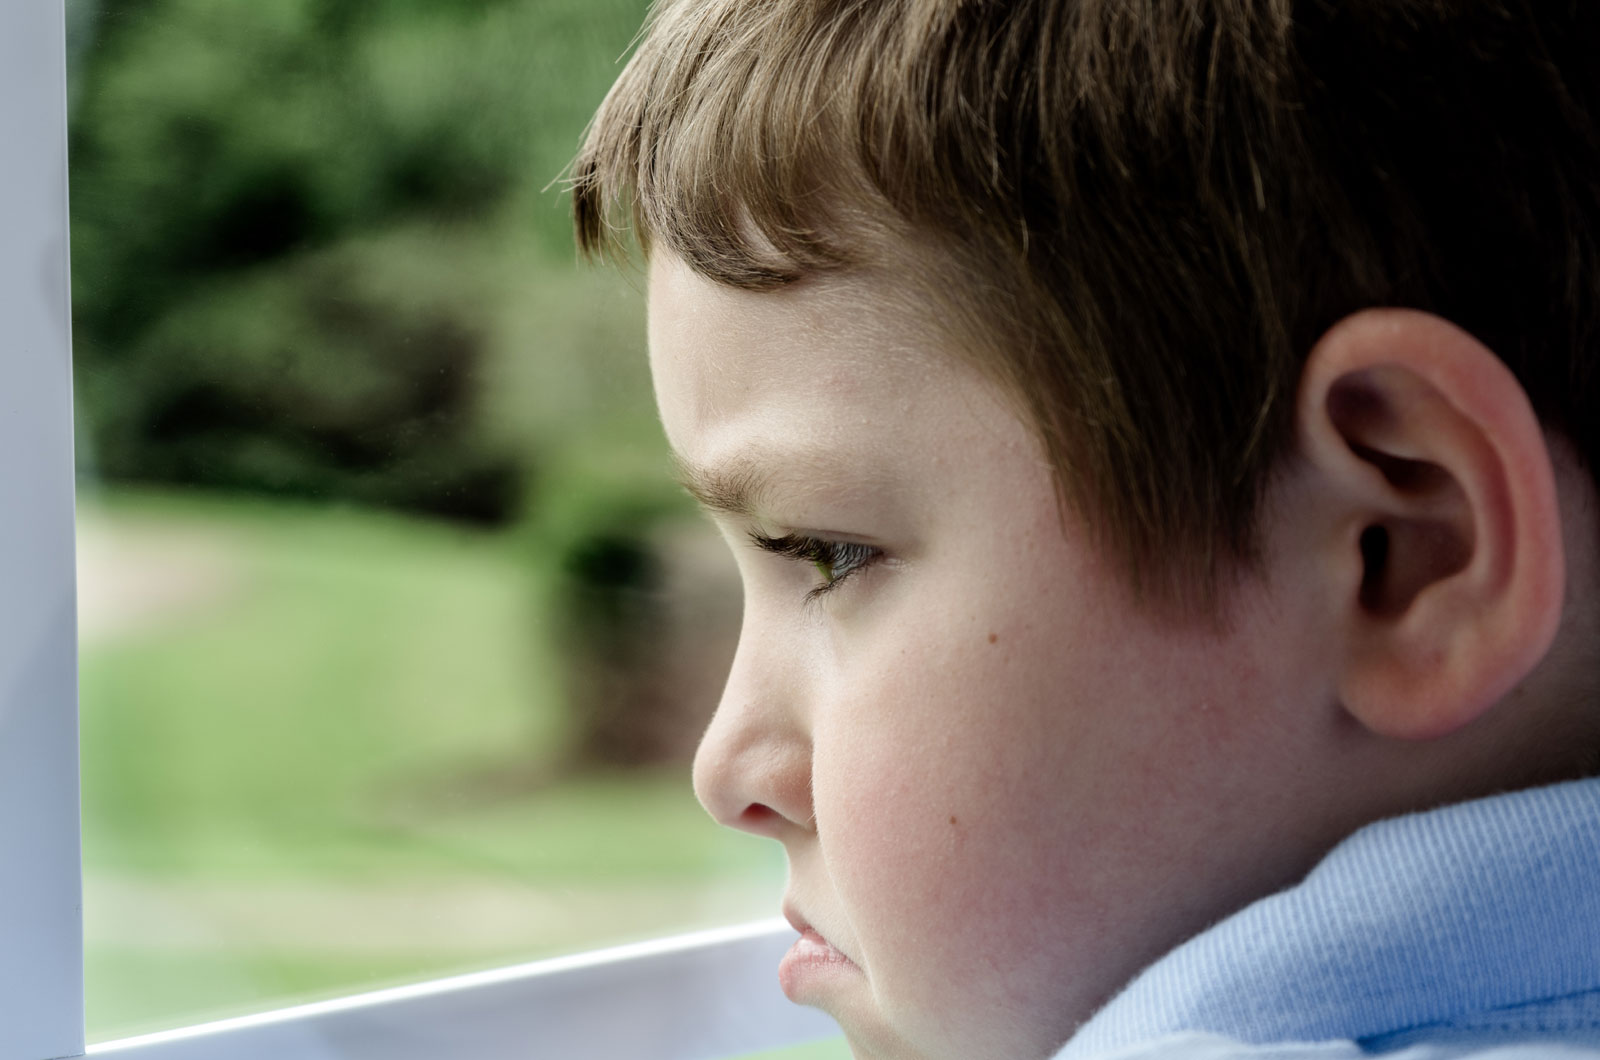 The child considers himself ugly: what to do